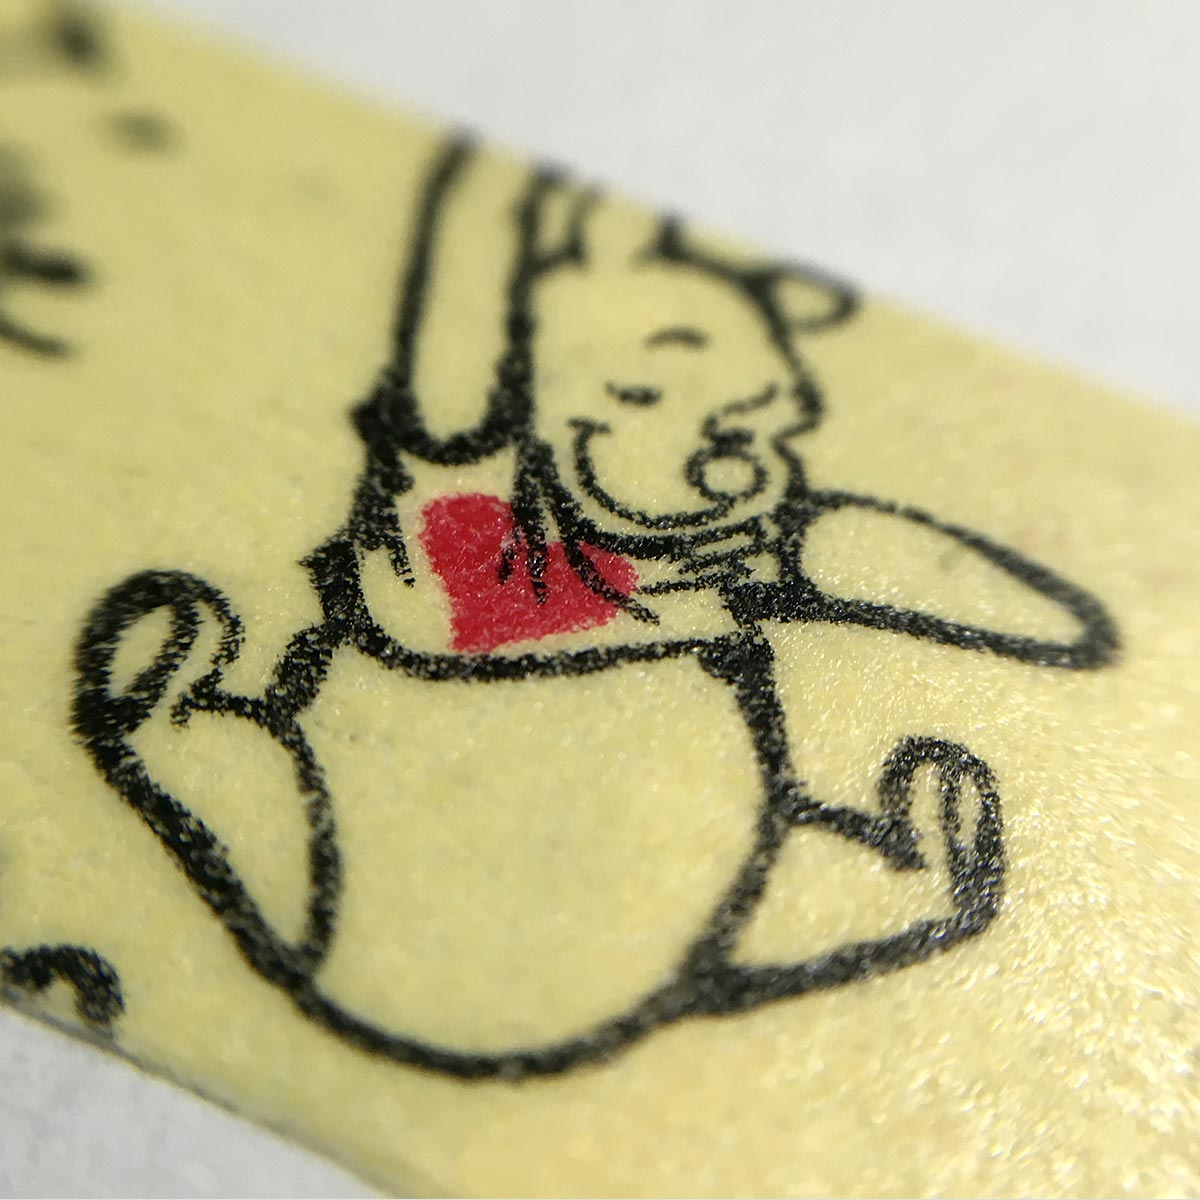 Winnie The Pooh Masking Tape - close up 1